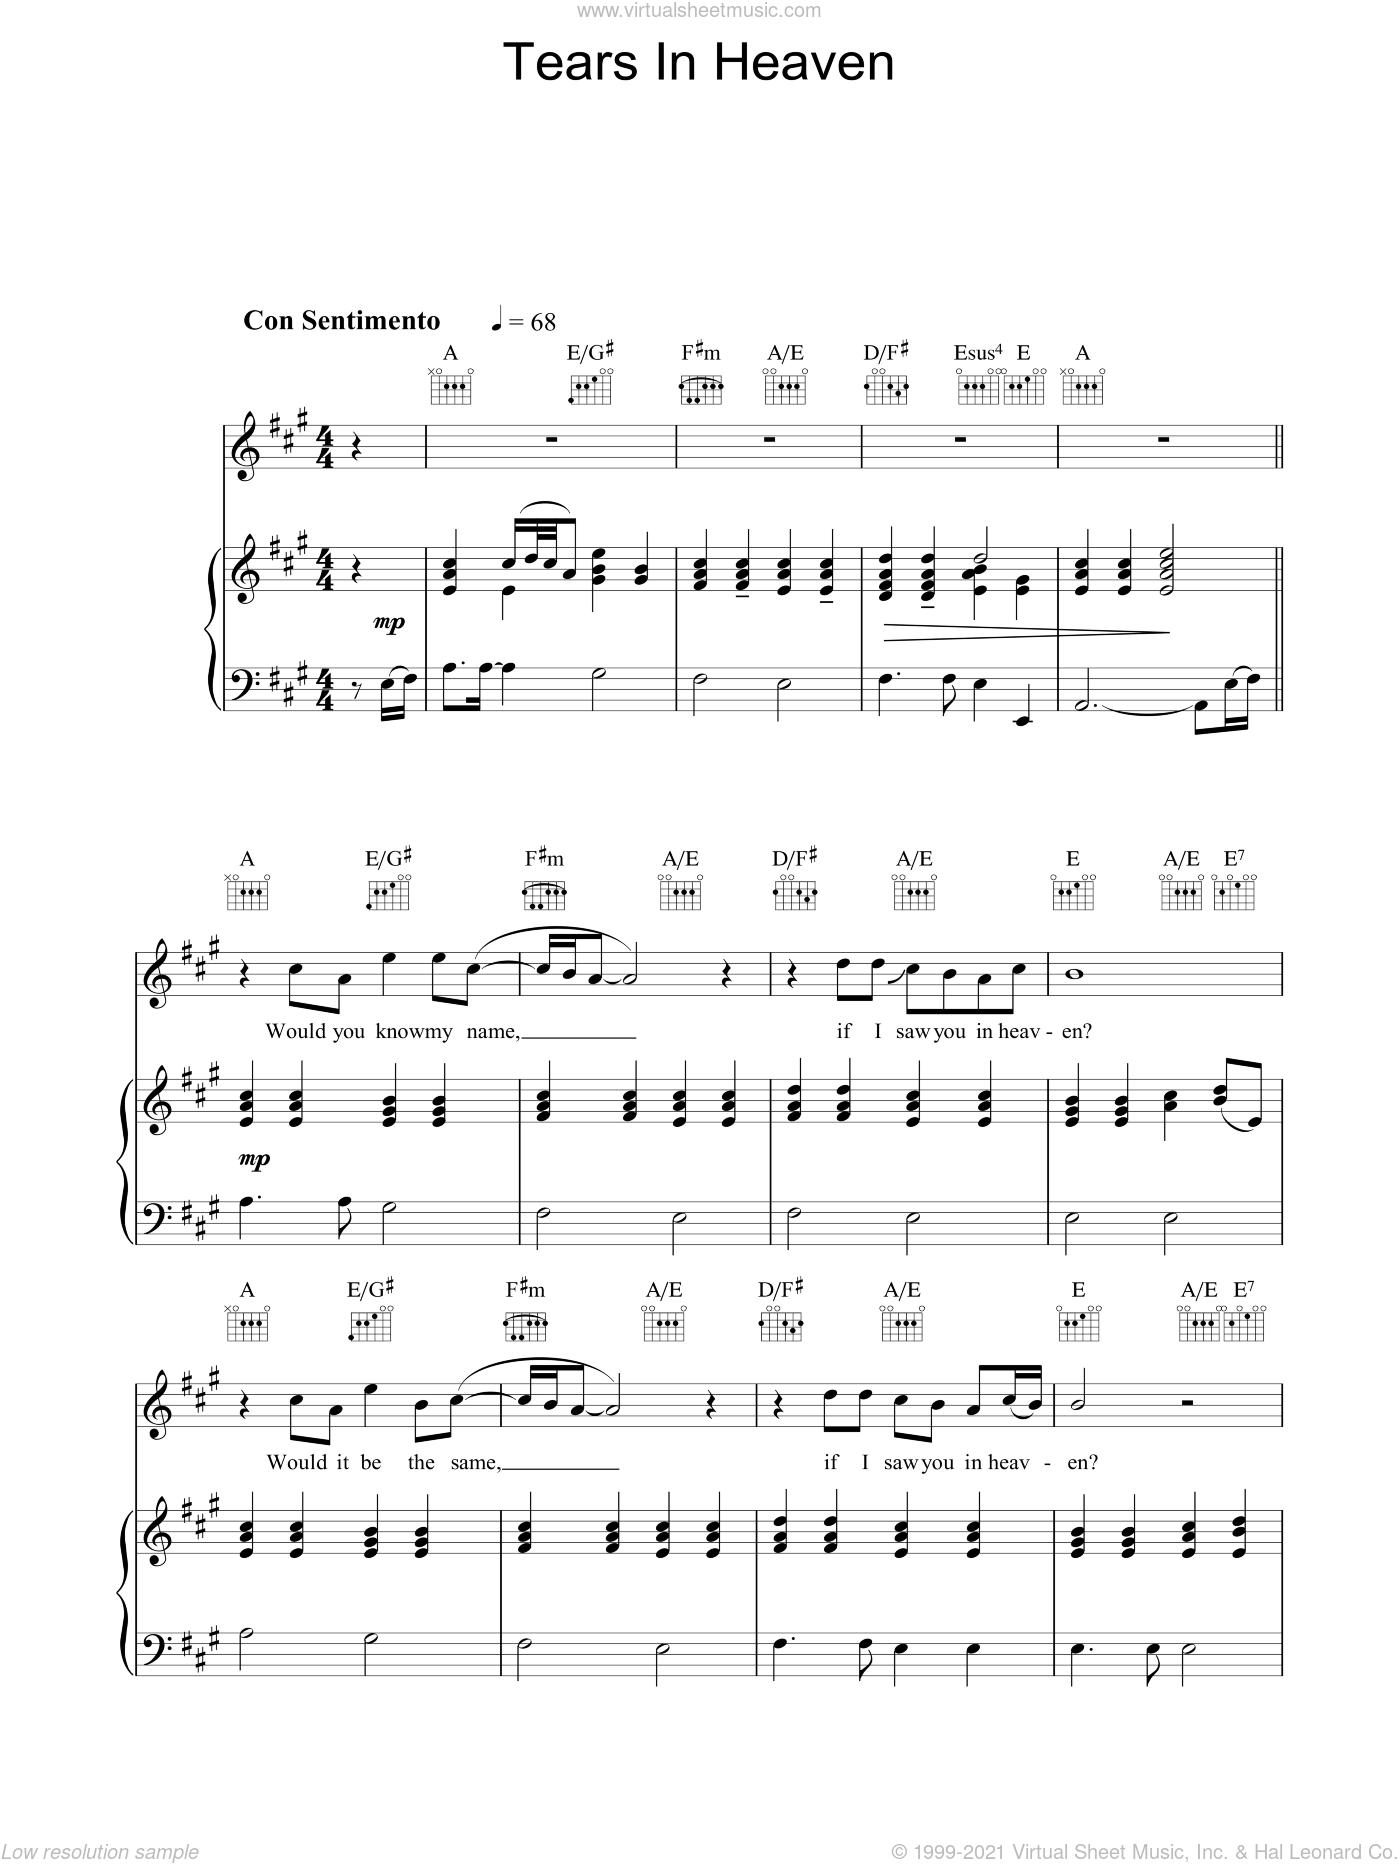 Tears In Heaven sheet music for voice, piano or guitar by Will Jennings